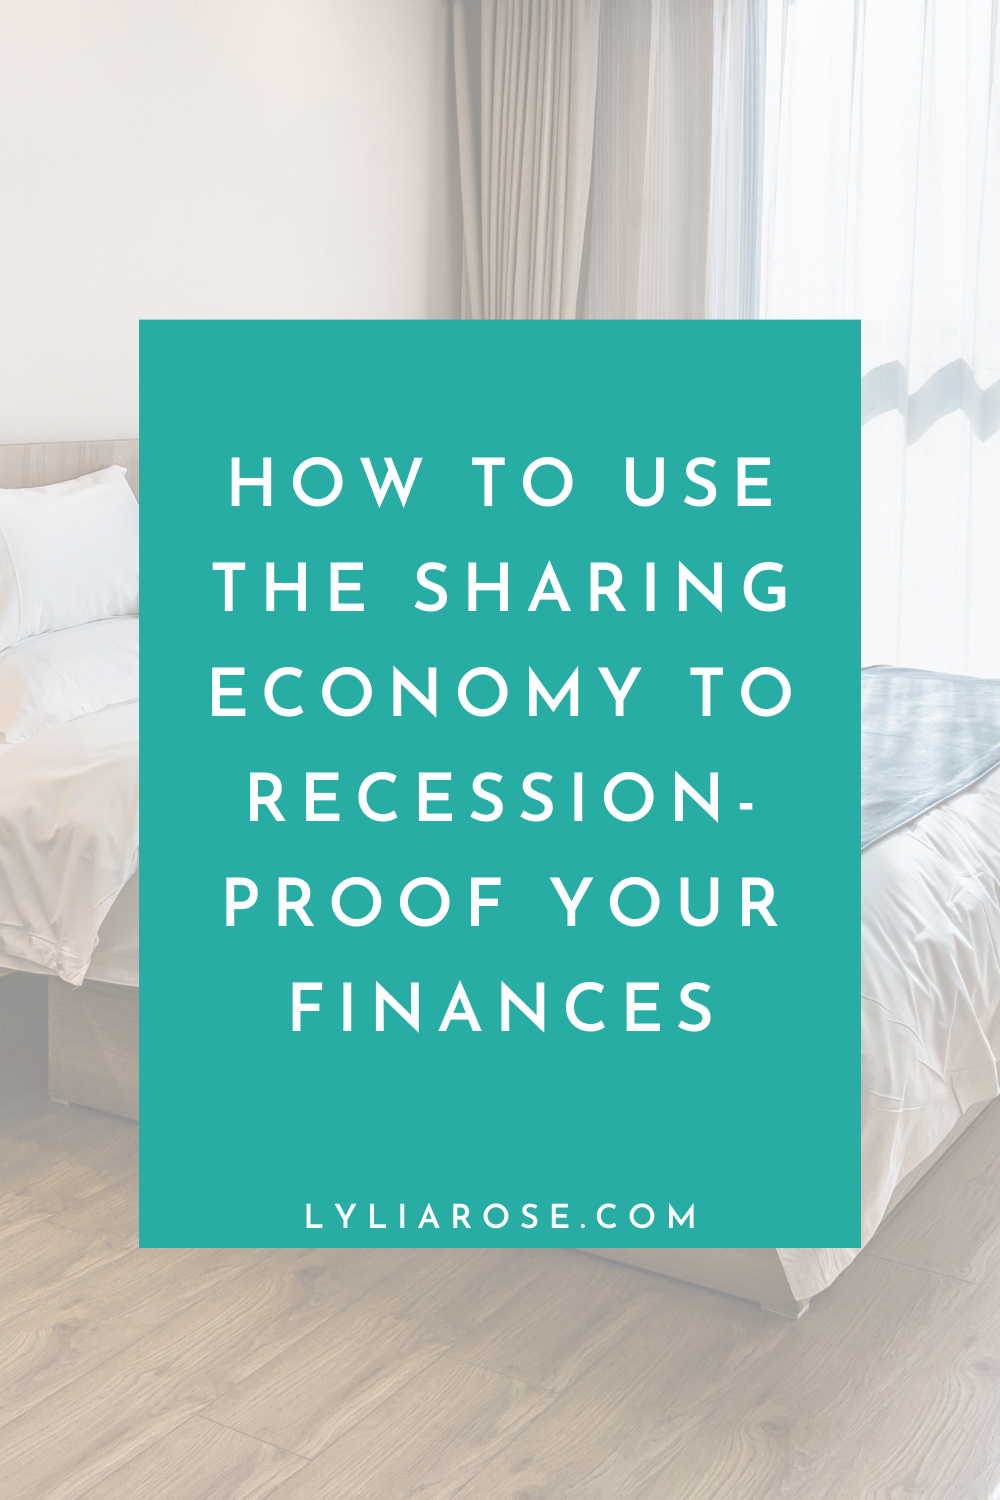 How to use the sharing economy to recession-proof your finances (3)